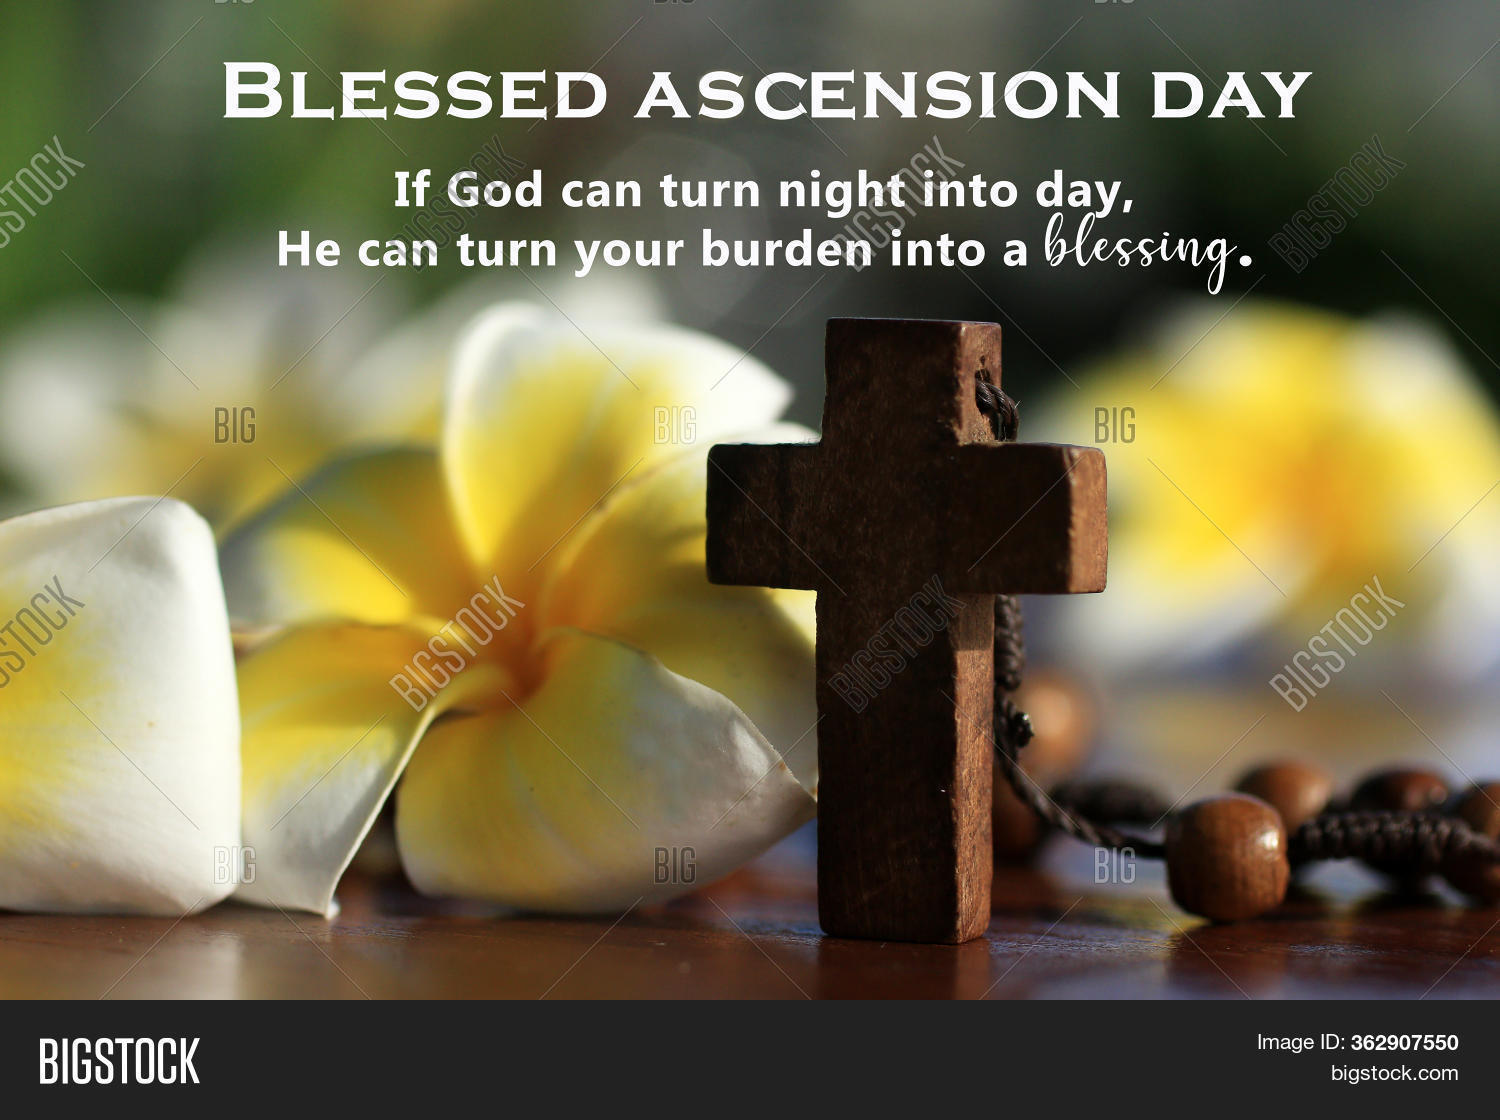 Blessed Ascension Day Image & Photo (Free Trial) | Bigstock